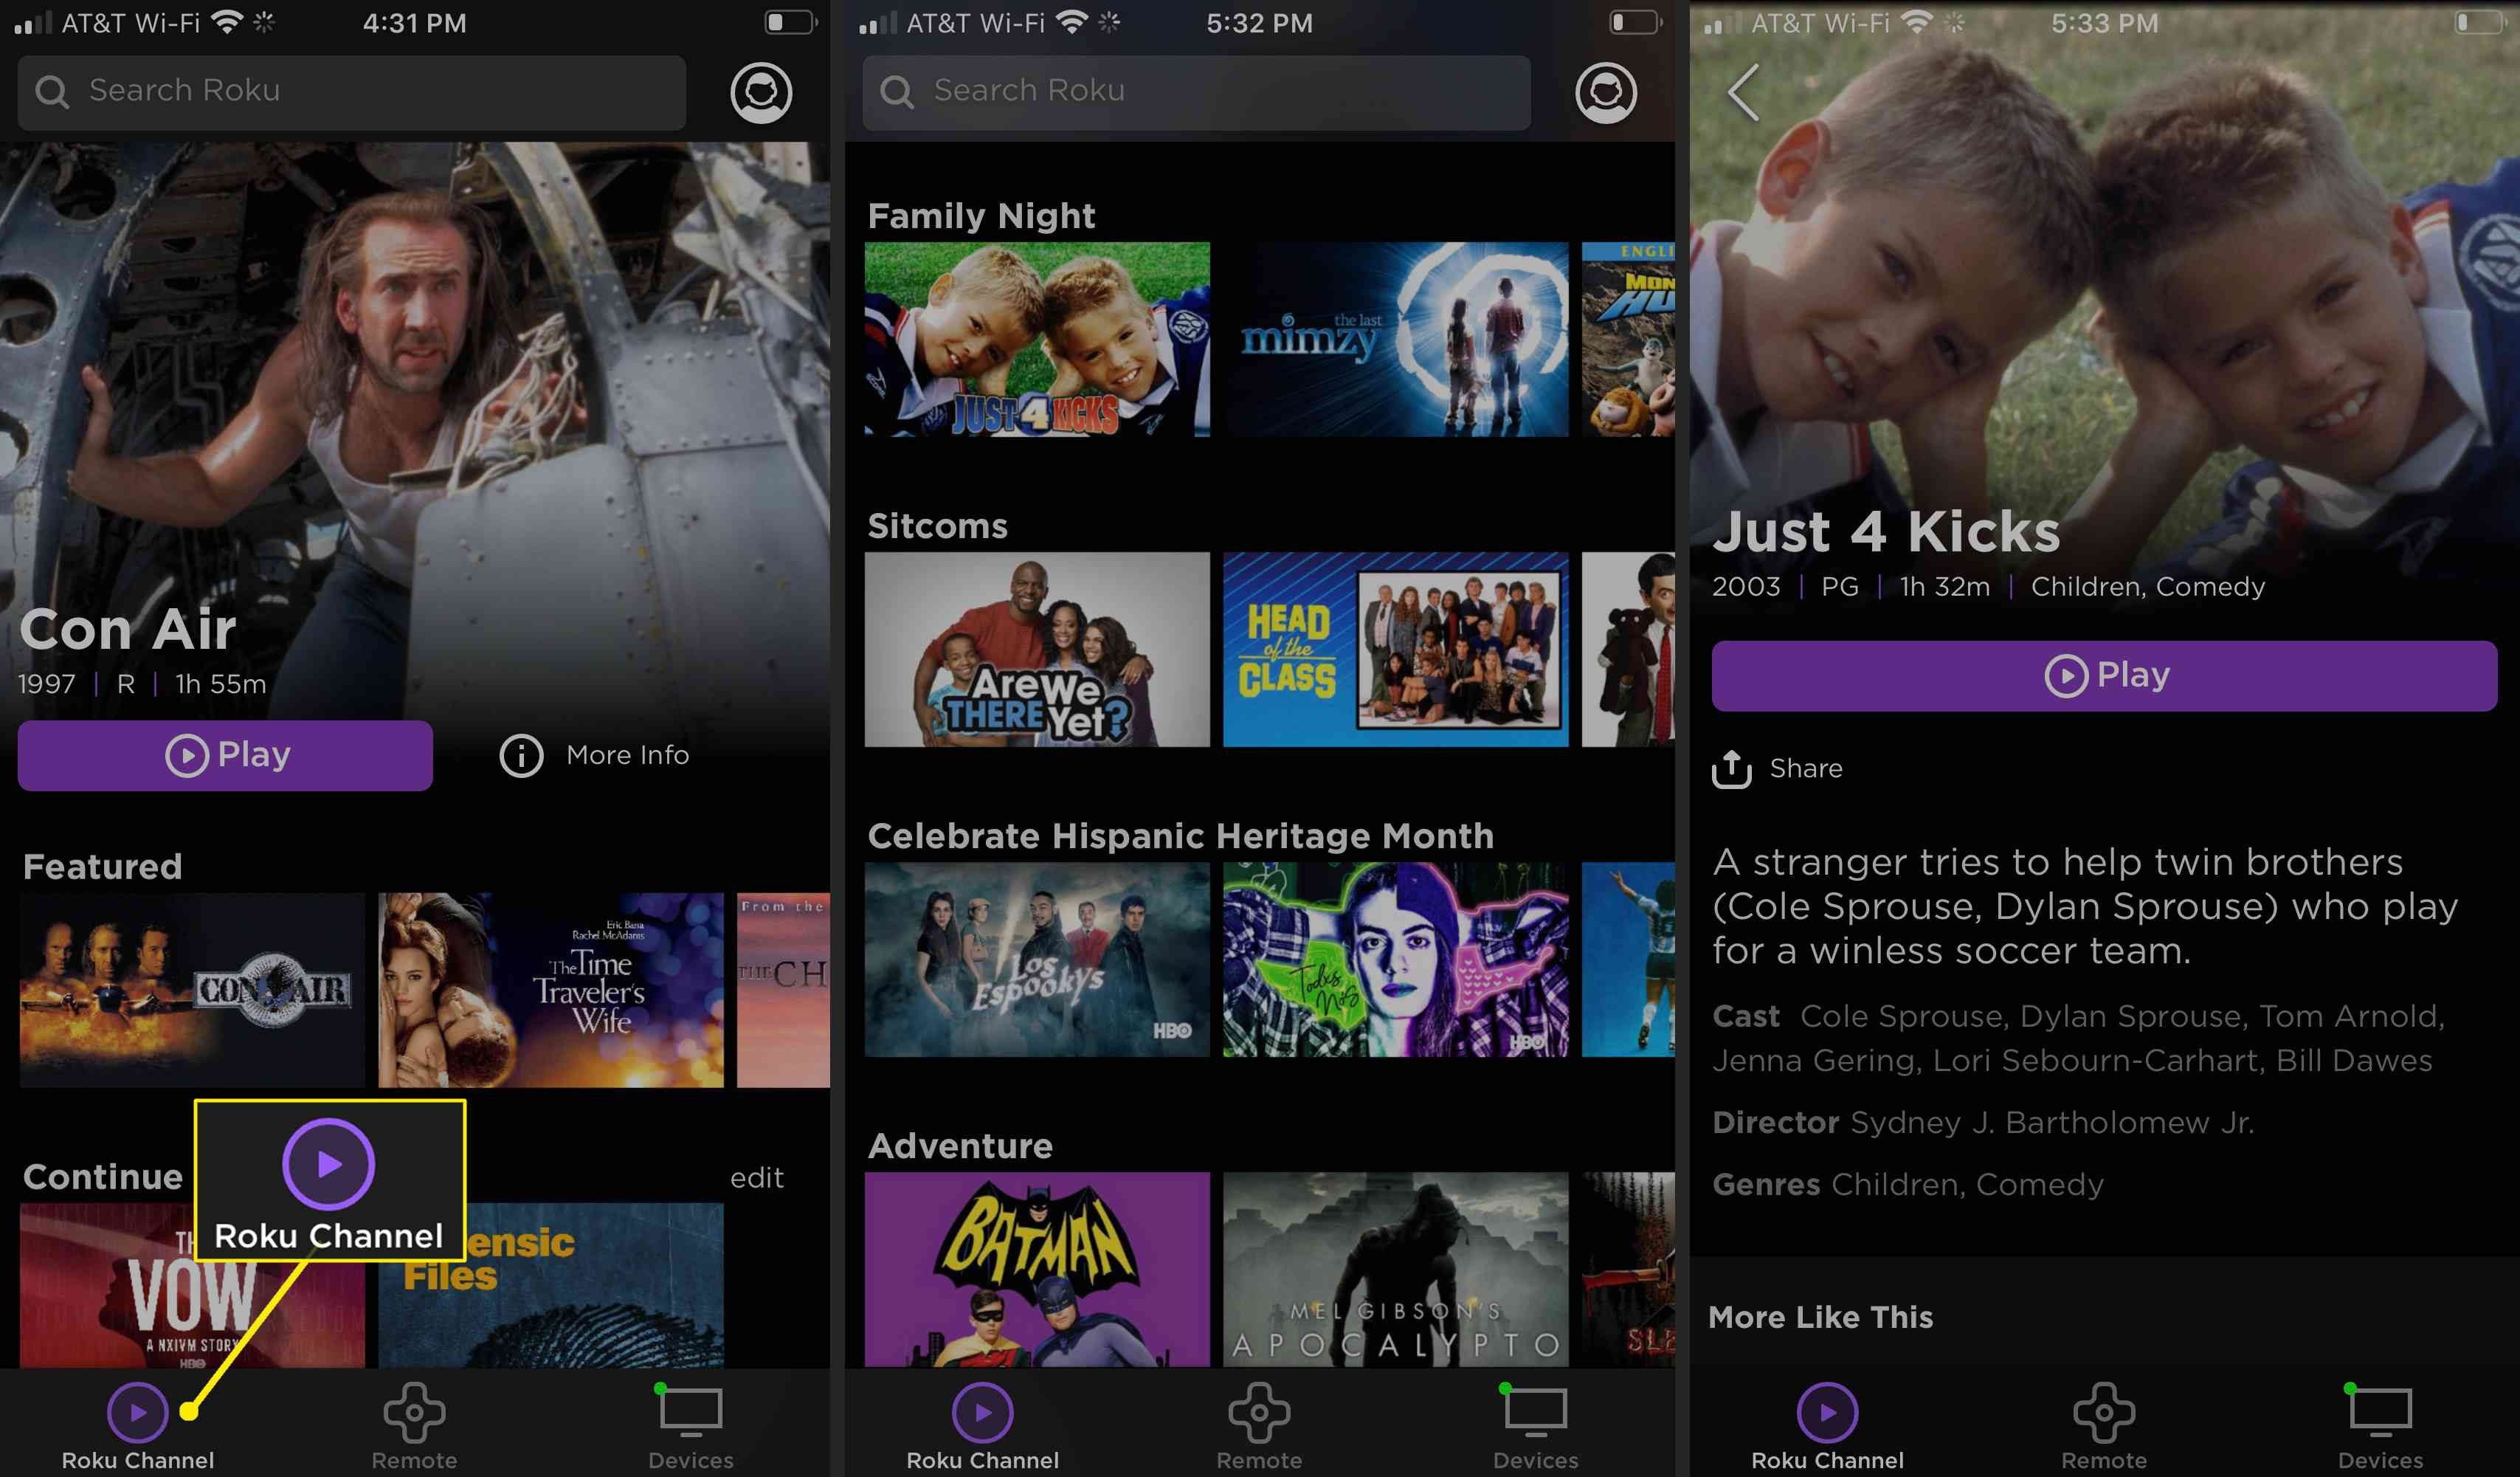 Find current programming with the Roku app